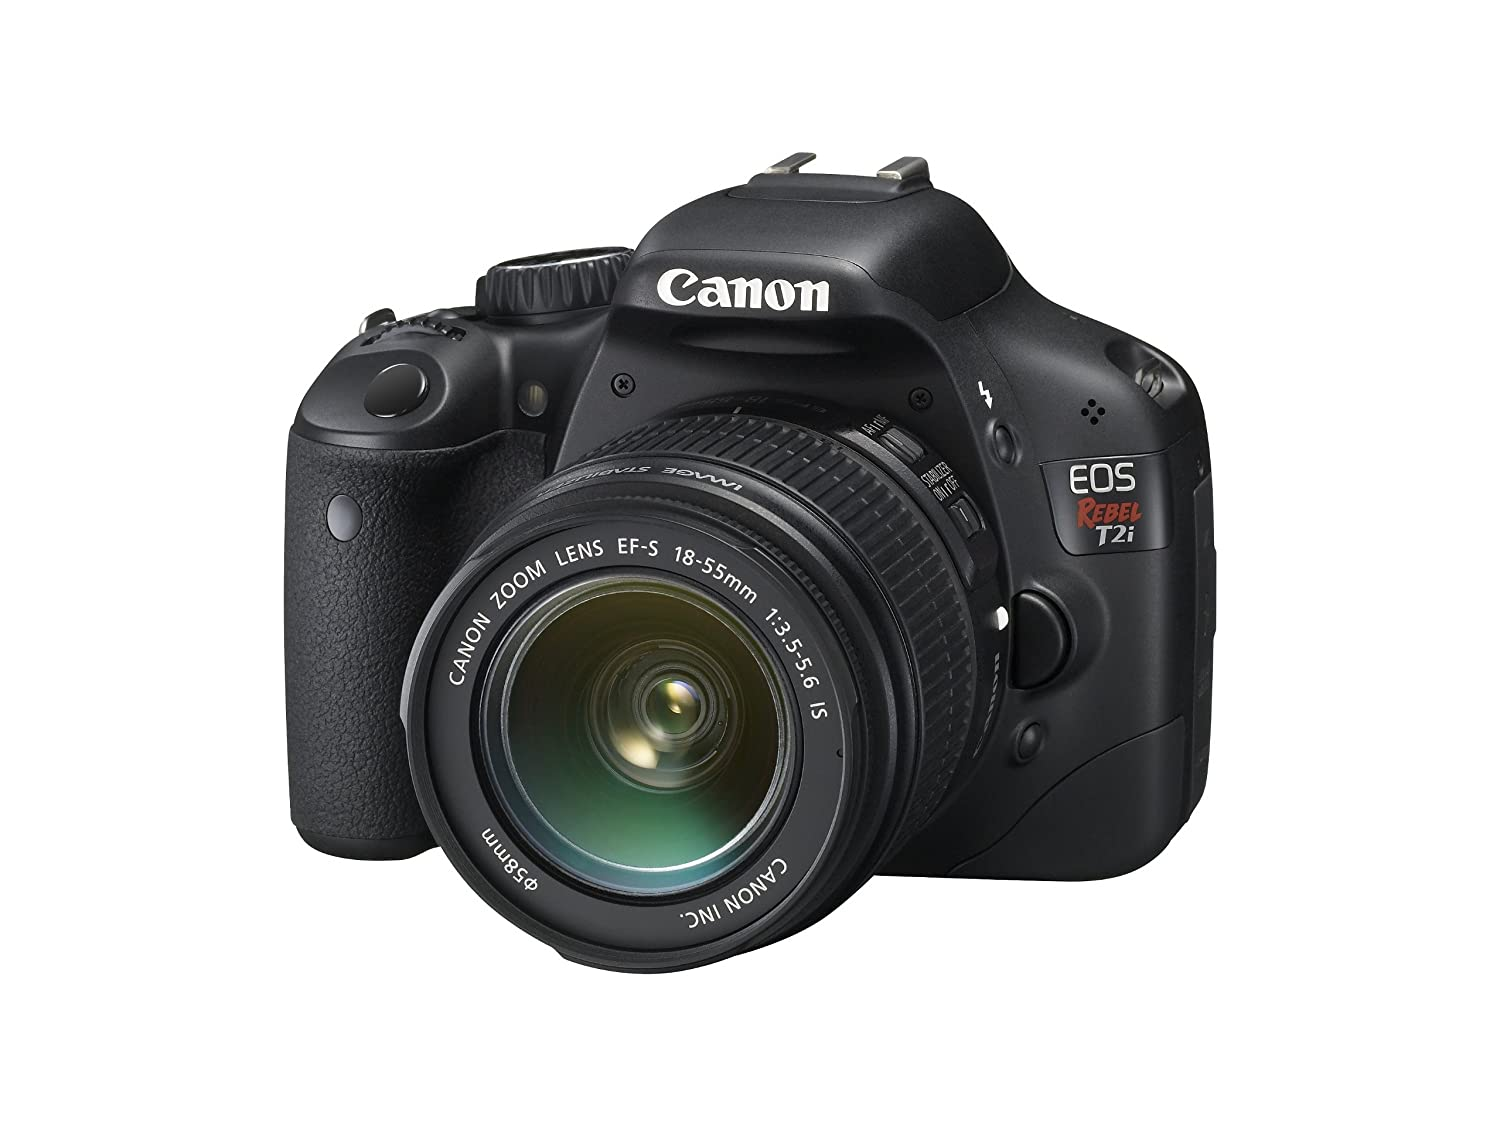 Canon Eos Rebel T2i Dslr Camera With Ef S 18 55mm F 35 Typical Wiring 4 Pole 3 5 Mm Jack 56 Is Lens Old Model Tsi Photo